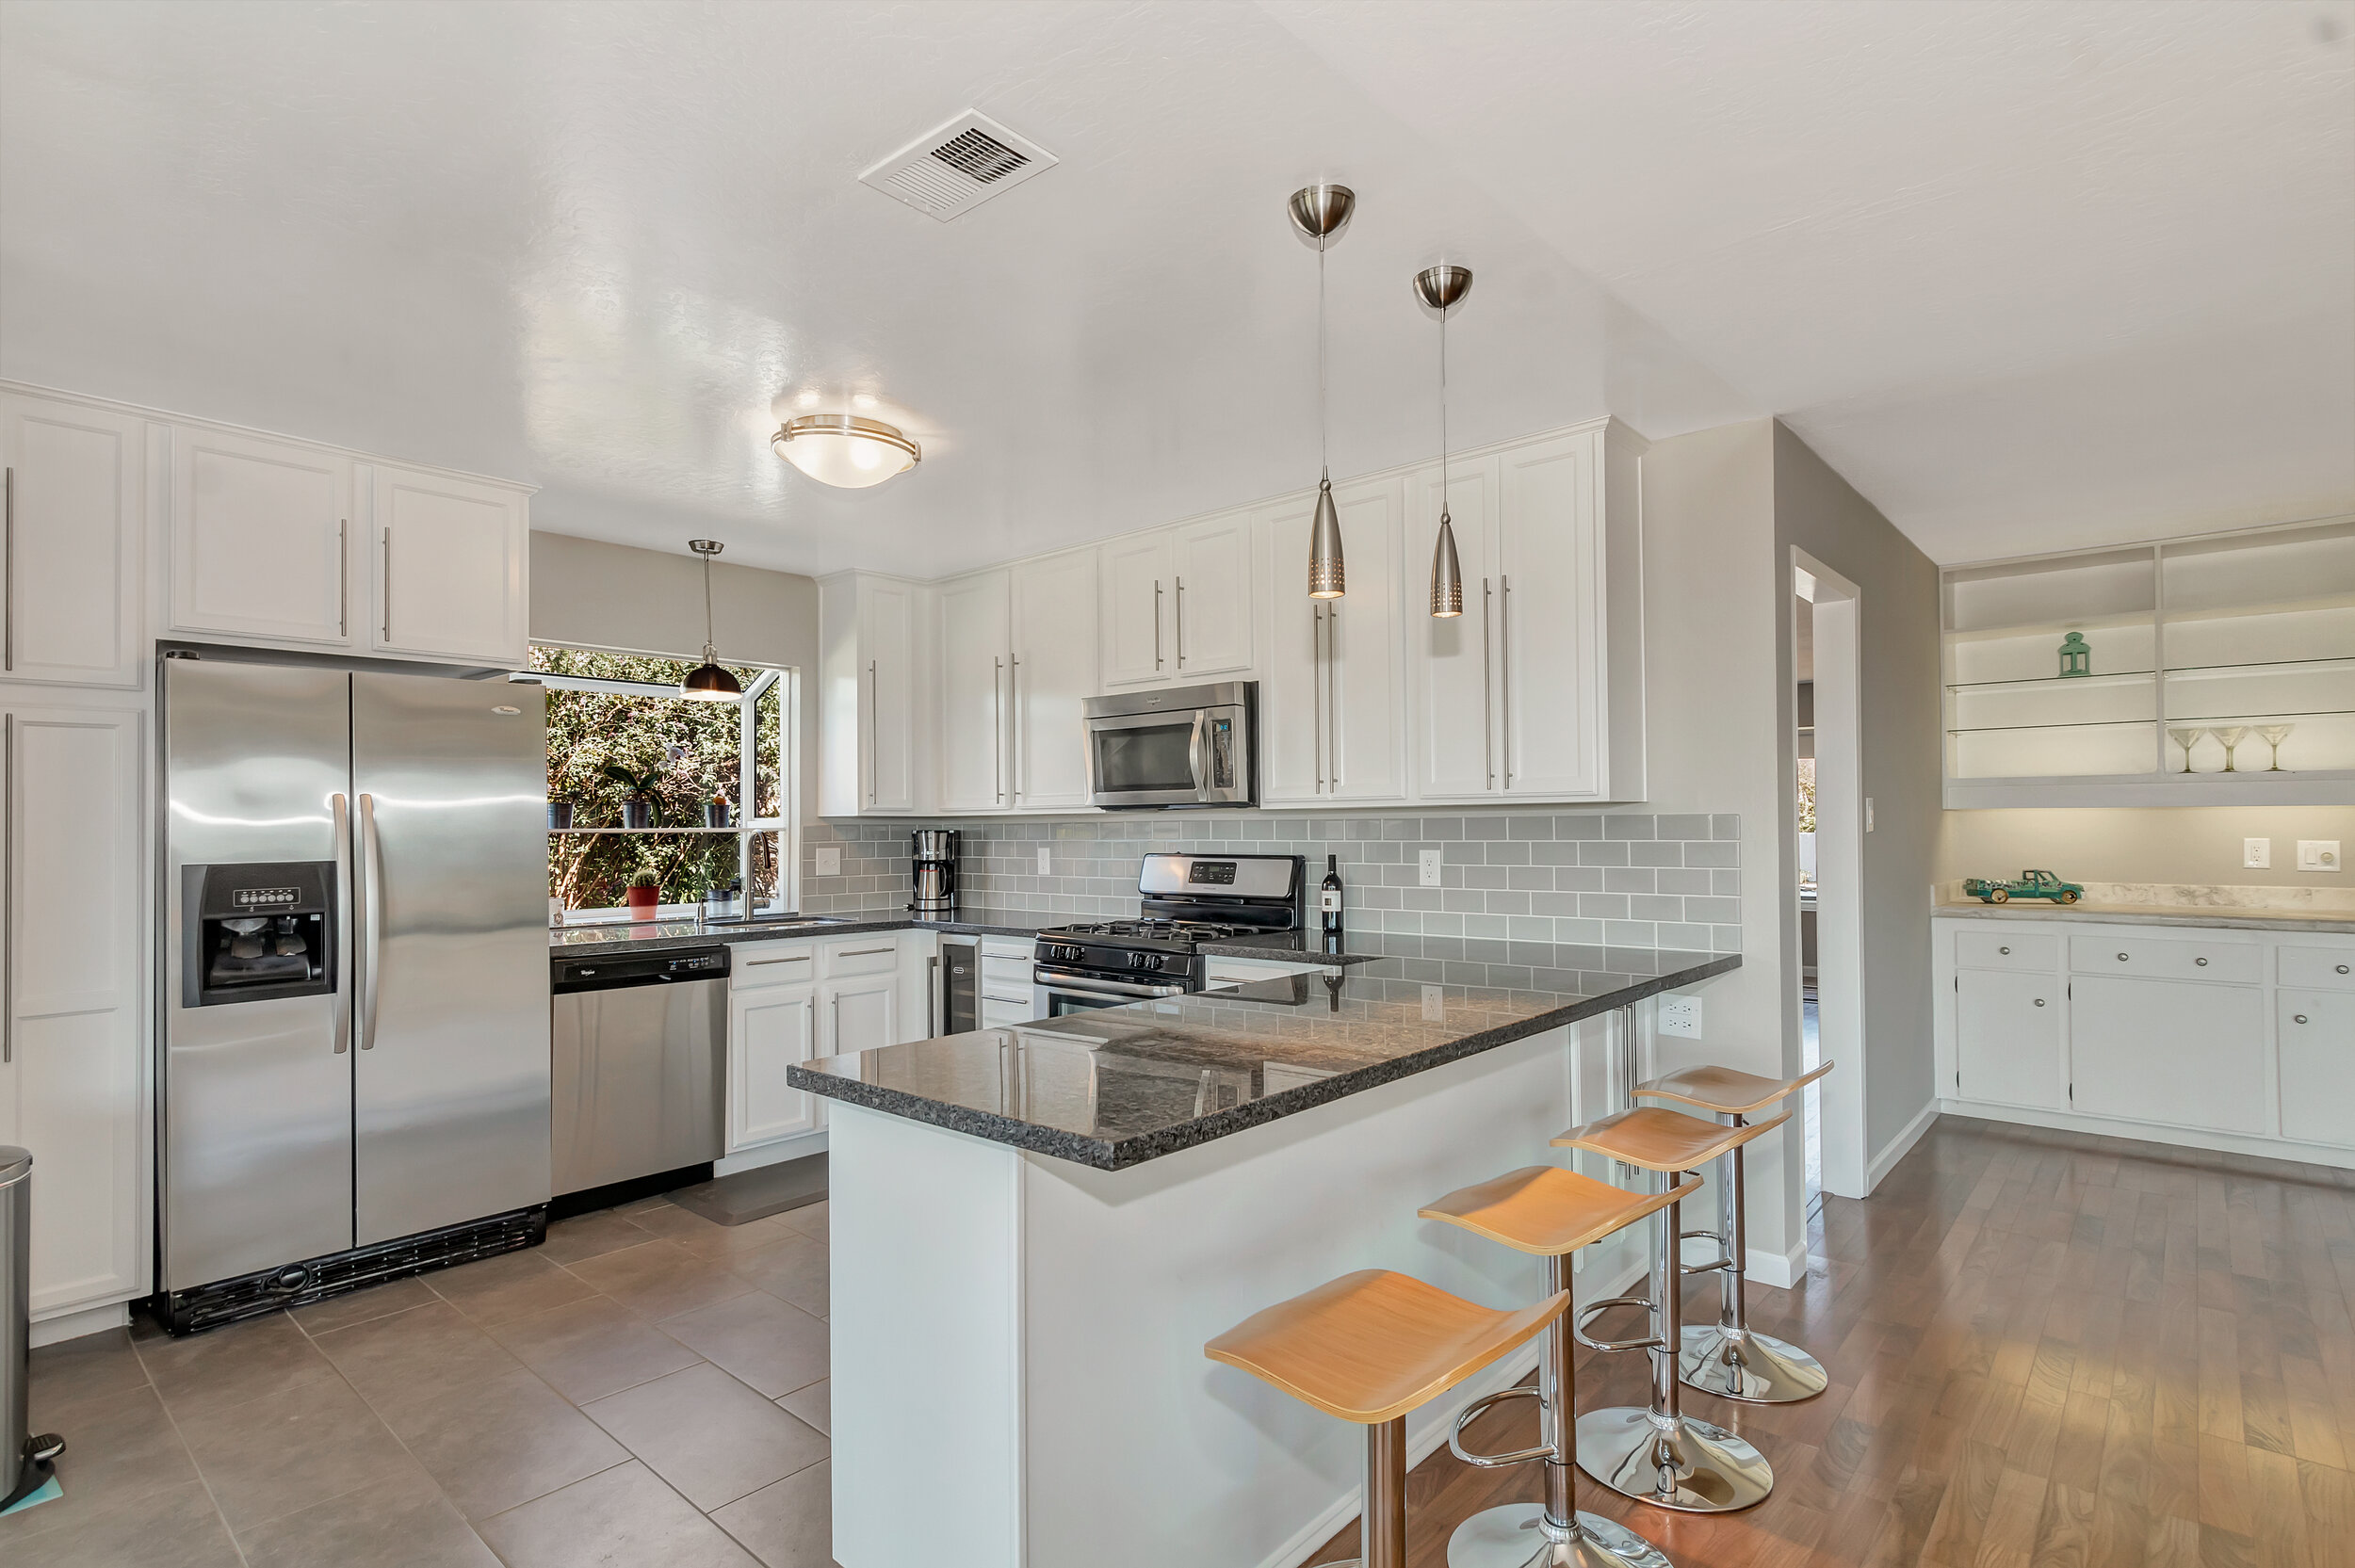 The kitchen has been fully remodeled & features stainless steel appliances.